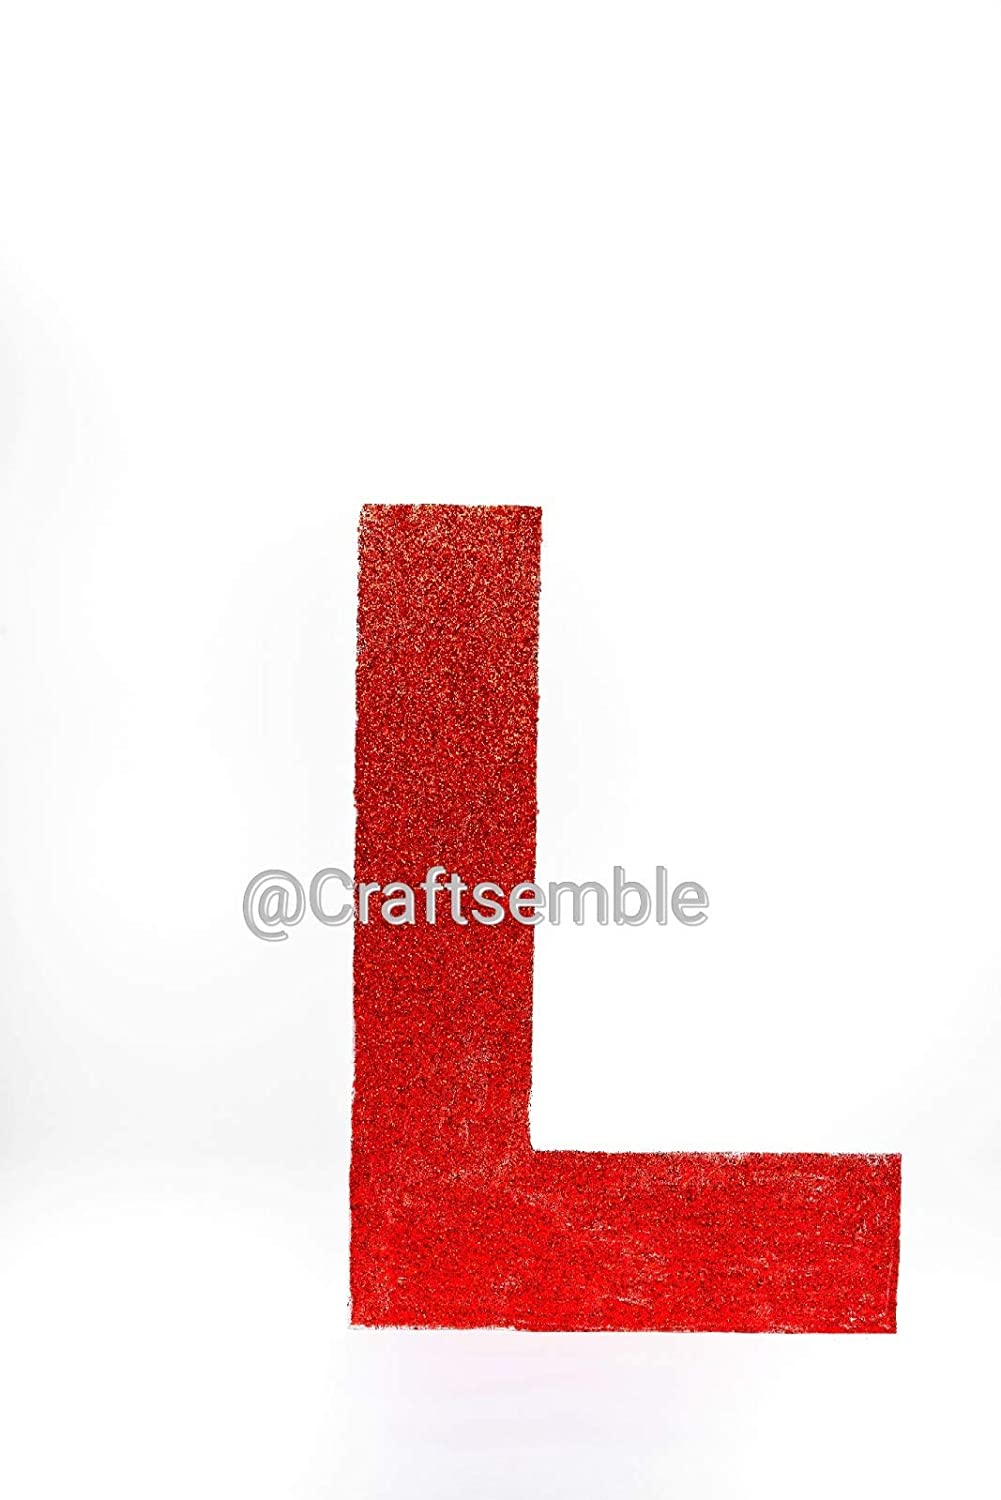 2 ft Large alphabet or number foam letter signs Letter L 36 inches 3 ft wide with a 2 inch thickness tall by 24 inches